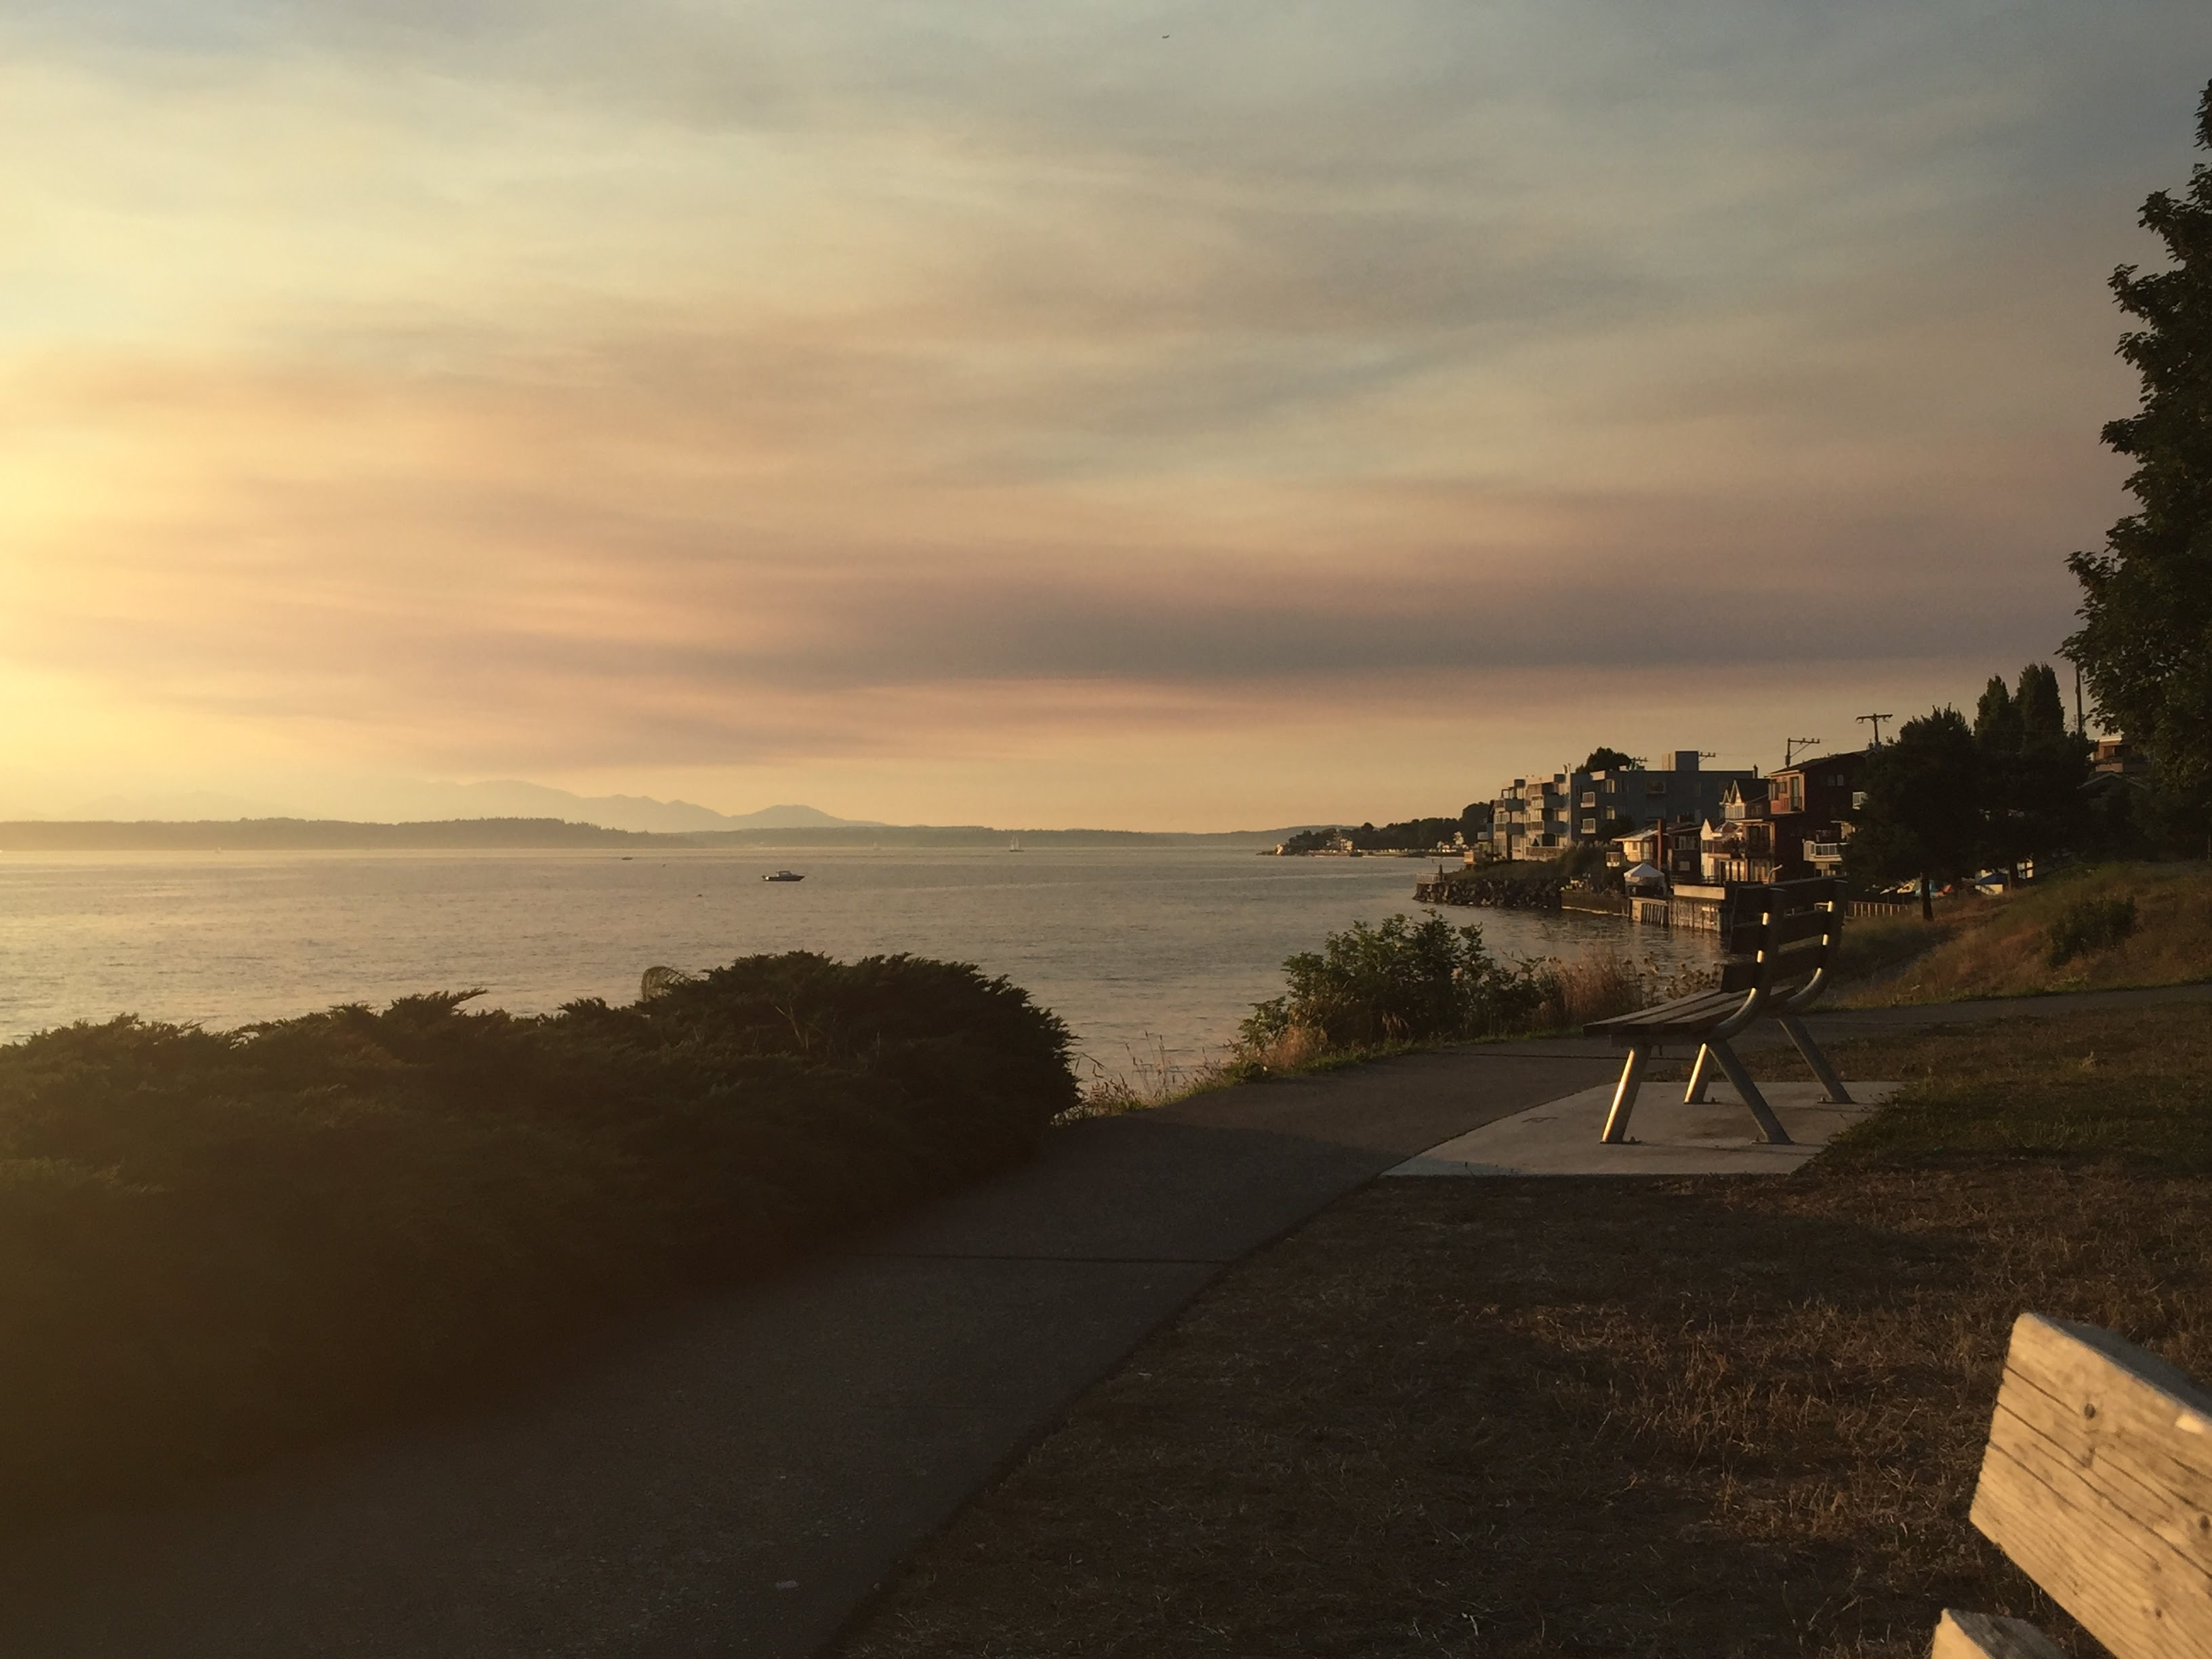 Under-the-radar Parks and Viewpoints | Visit Seattle